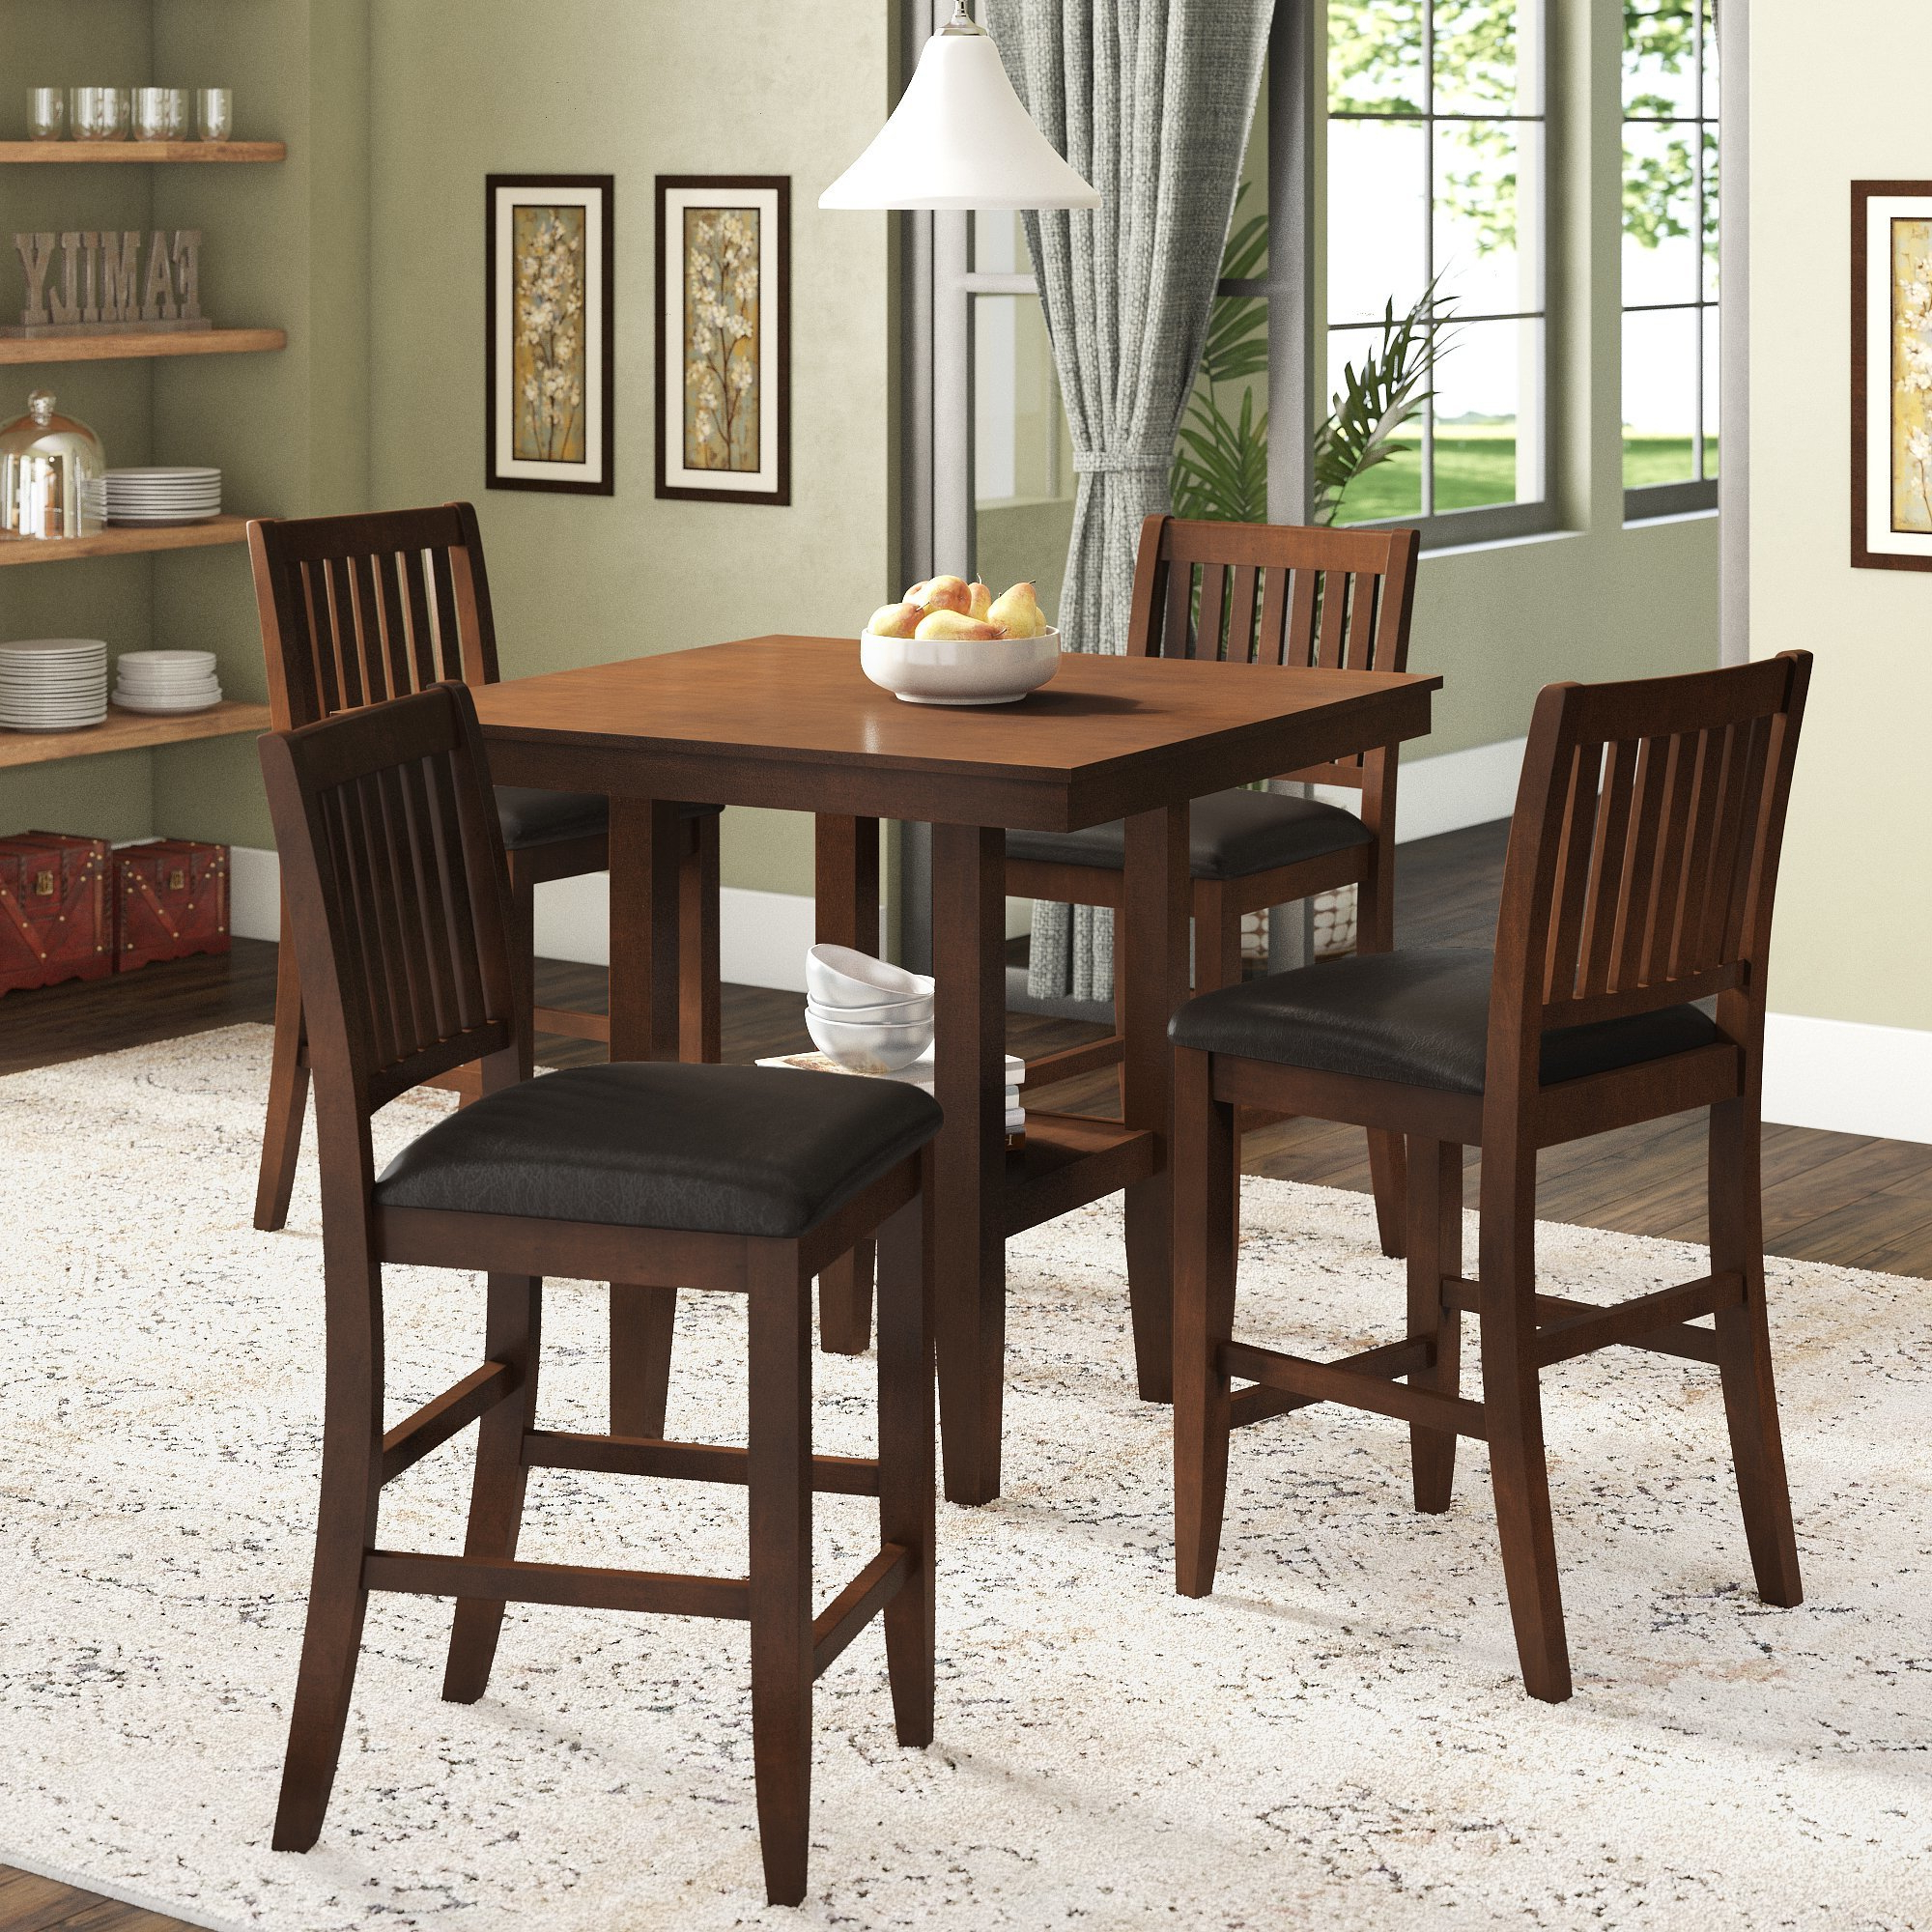 Ebay pertaining to Preferred Kerley 4 Piece Dining Sets